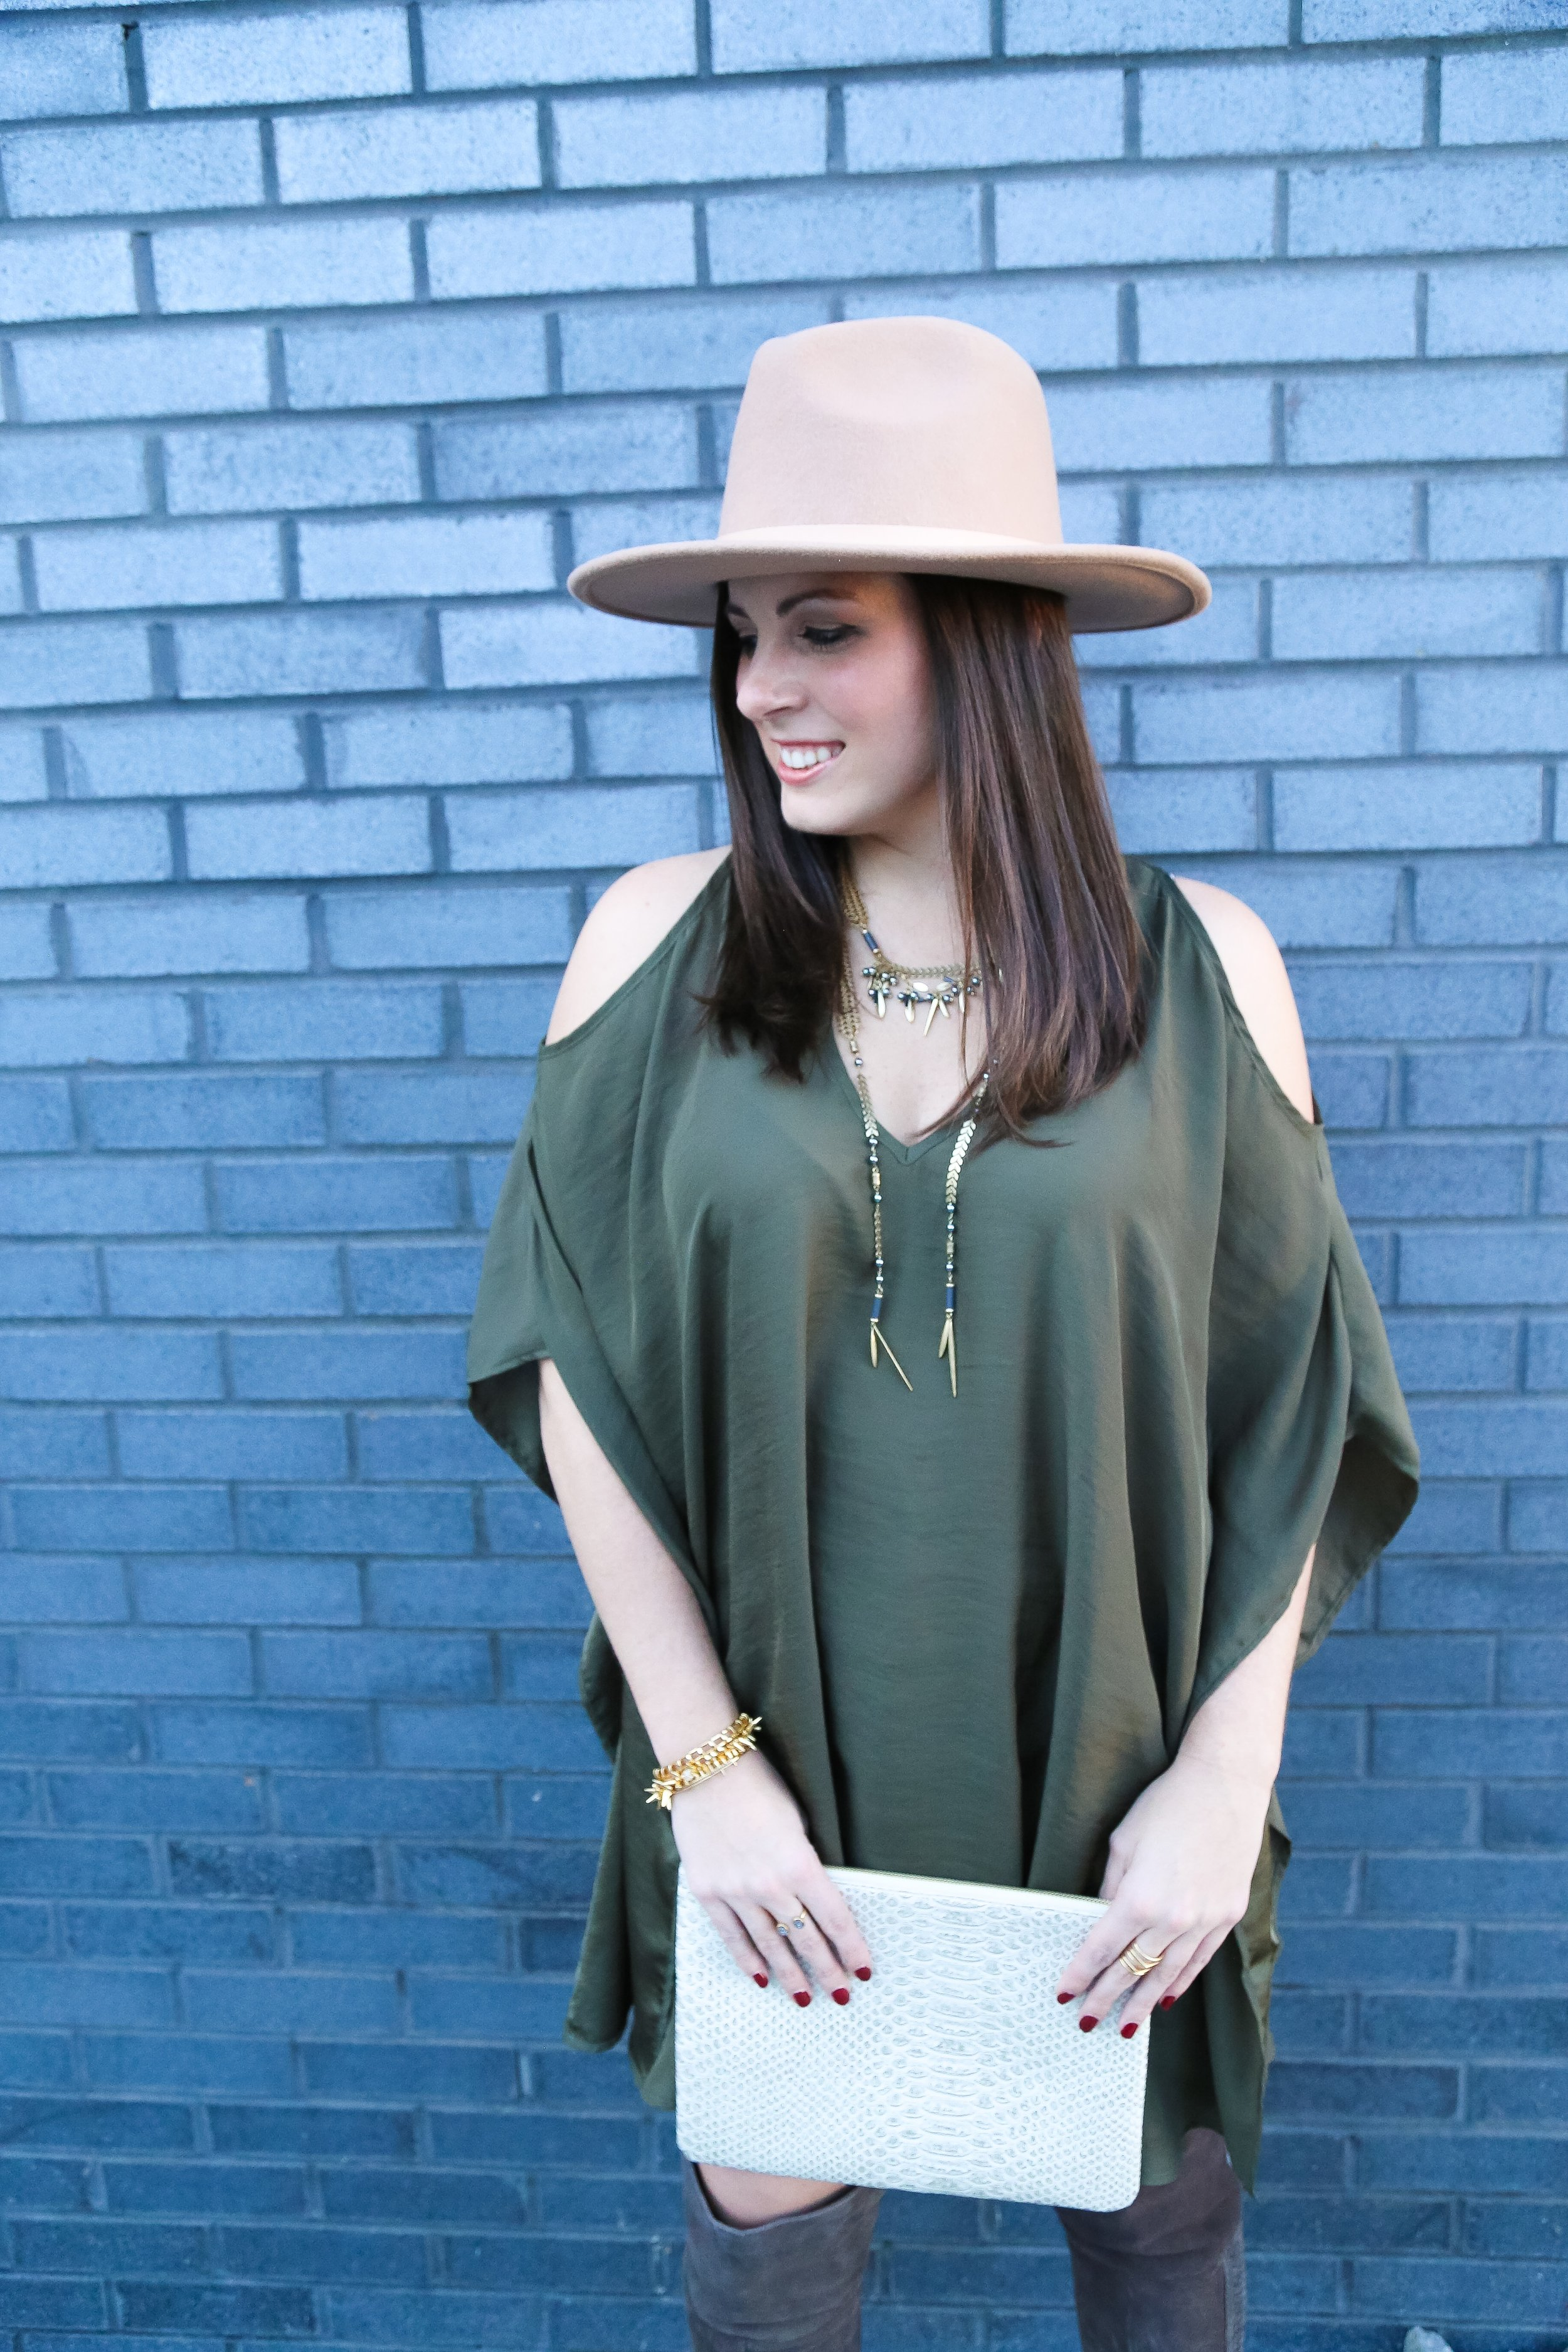 PHOTO: JESSICA VALIYI  Tunic / Hat:  e.Allen Boutique   Over The Knee Boots:  e.Allen Boutique   Accessories by  Stella & Dot    Laurel Lariat Necklace    Renegade Bracelet in Gold    Cage Cuff In Gold    All In Pouch